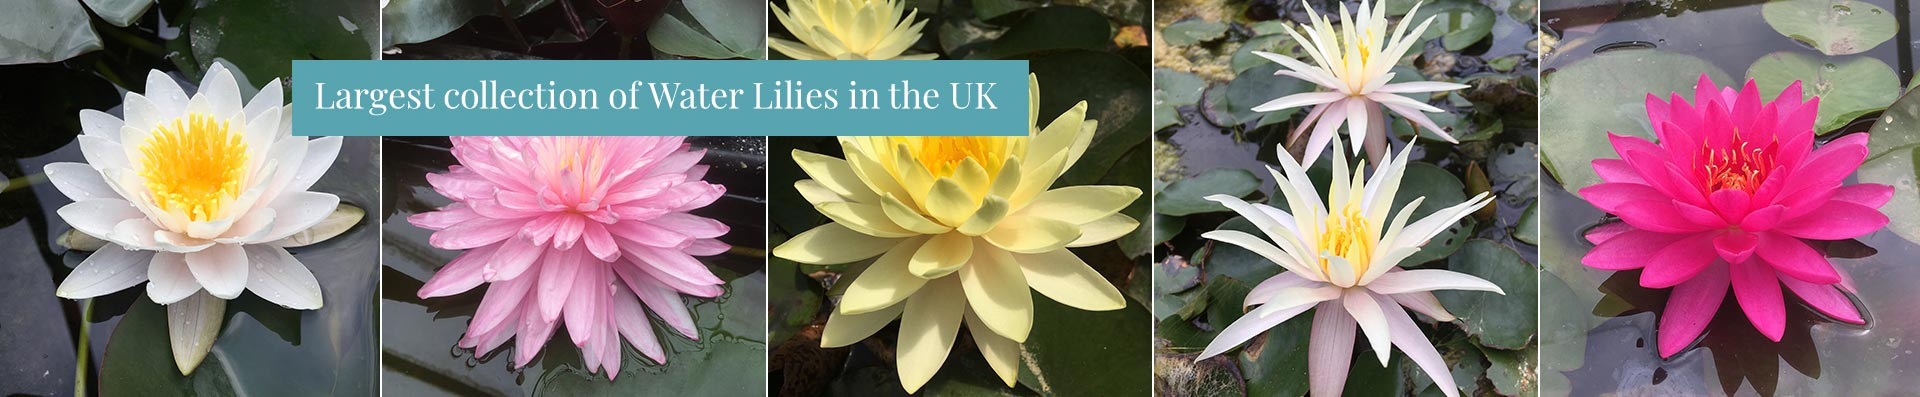 Largest Collection of Water Lilies in the UK